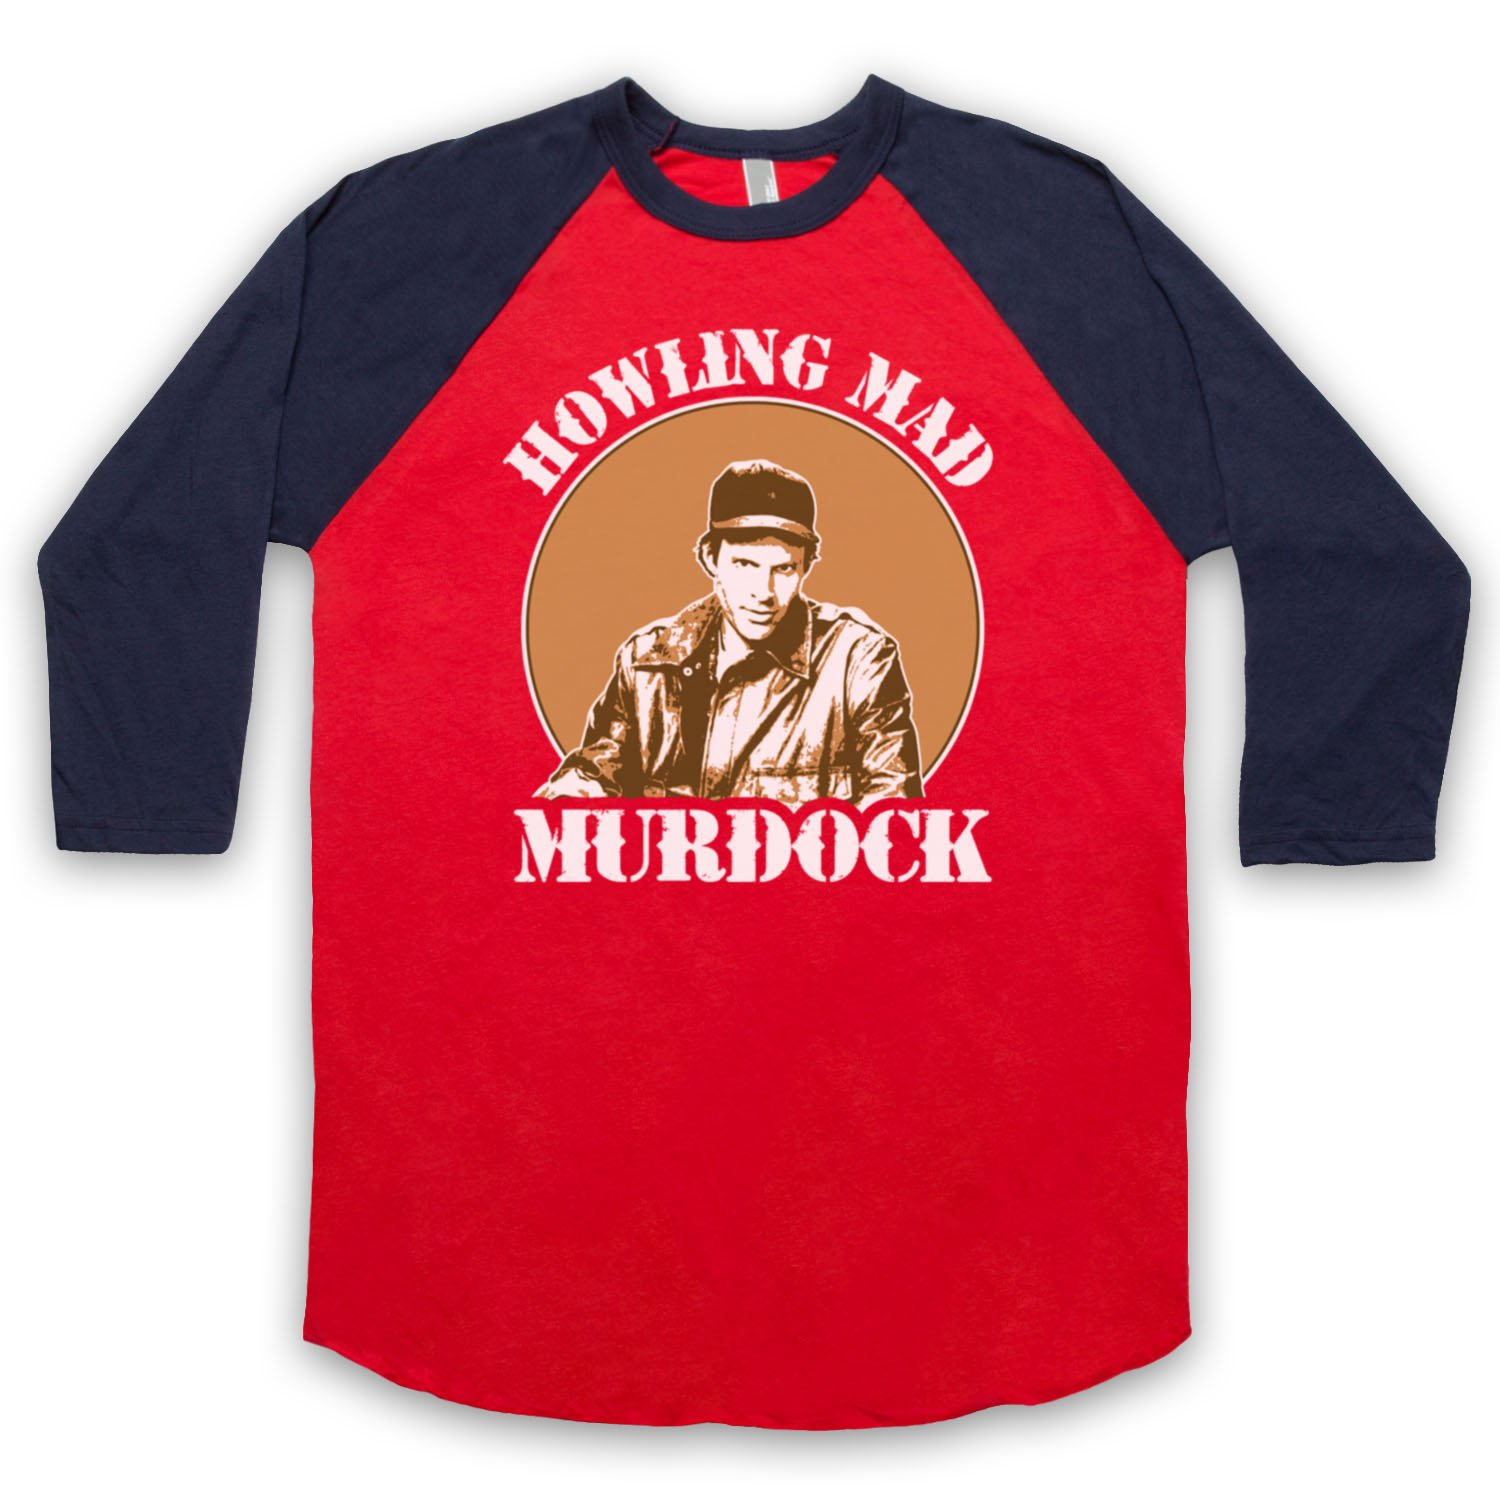 Inspired by A Team Howlin Mad Murdock Unofficial 3/4 Sleeve Retro Baseball Tee